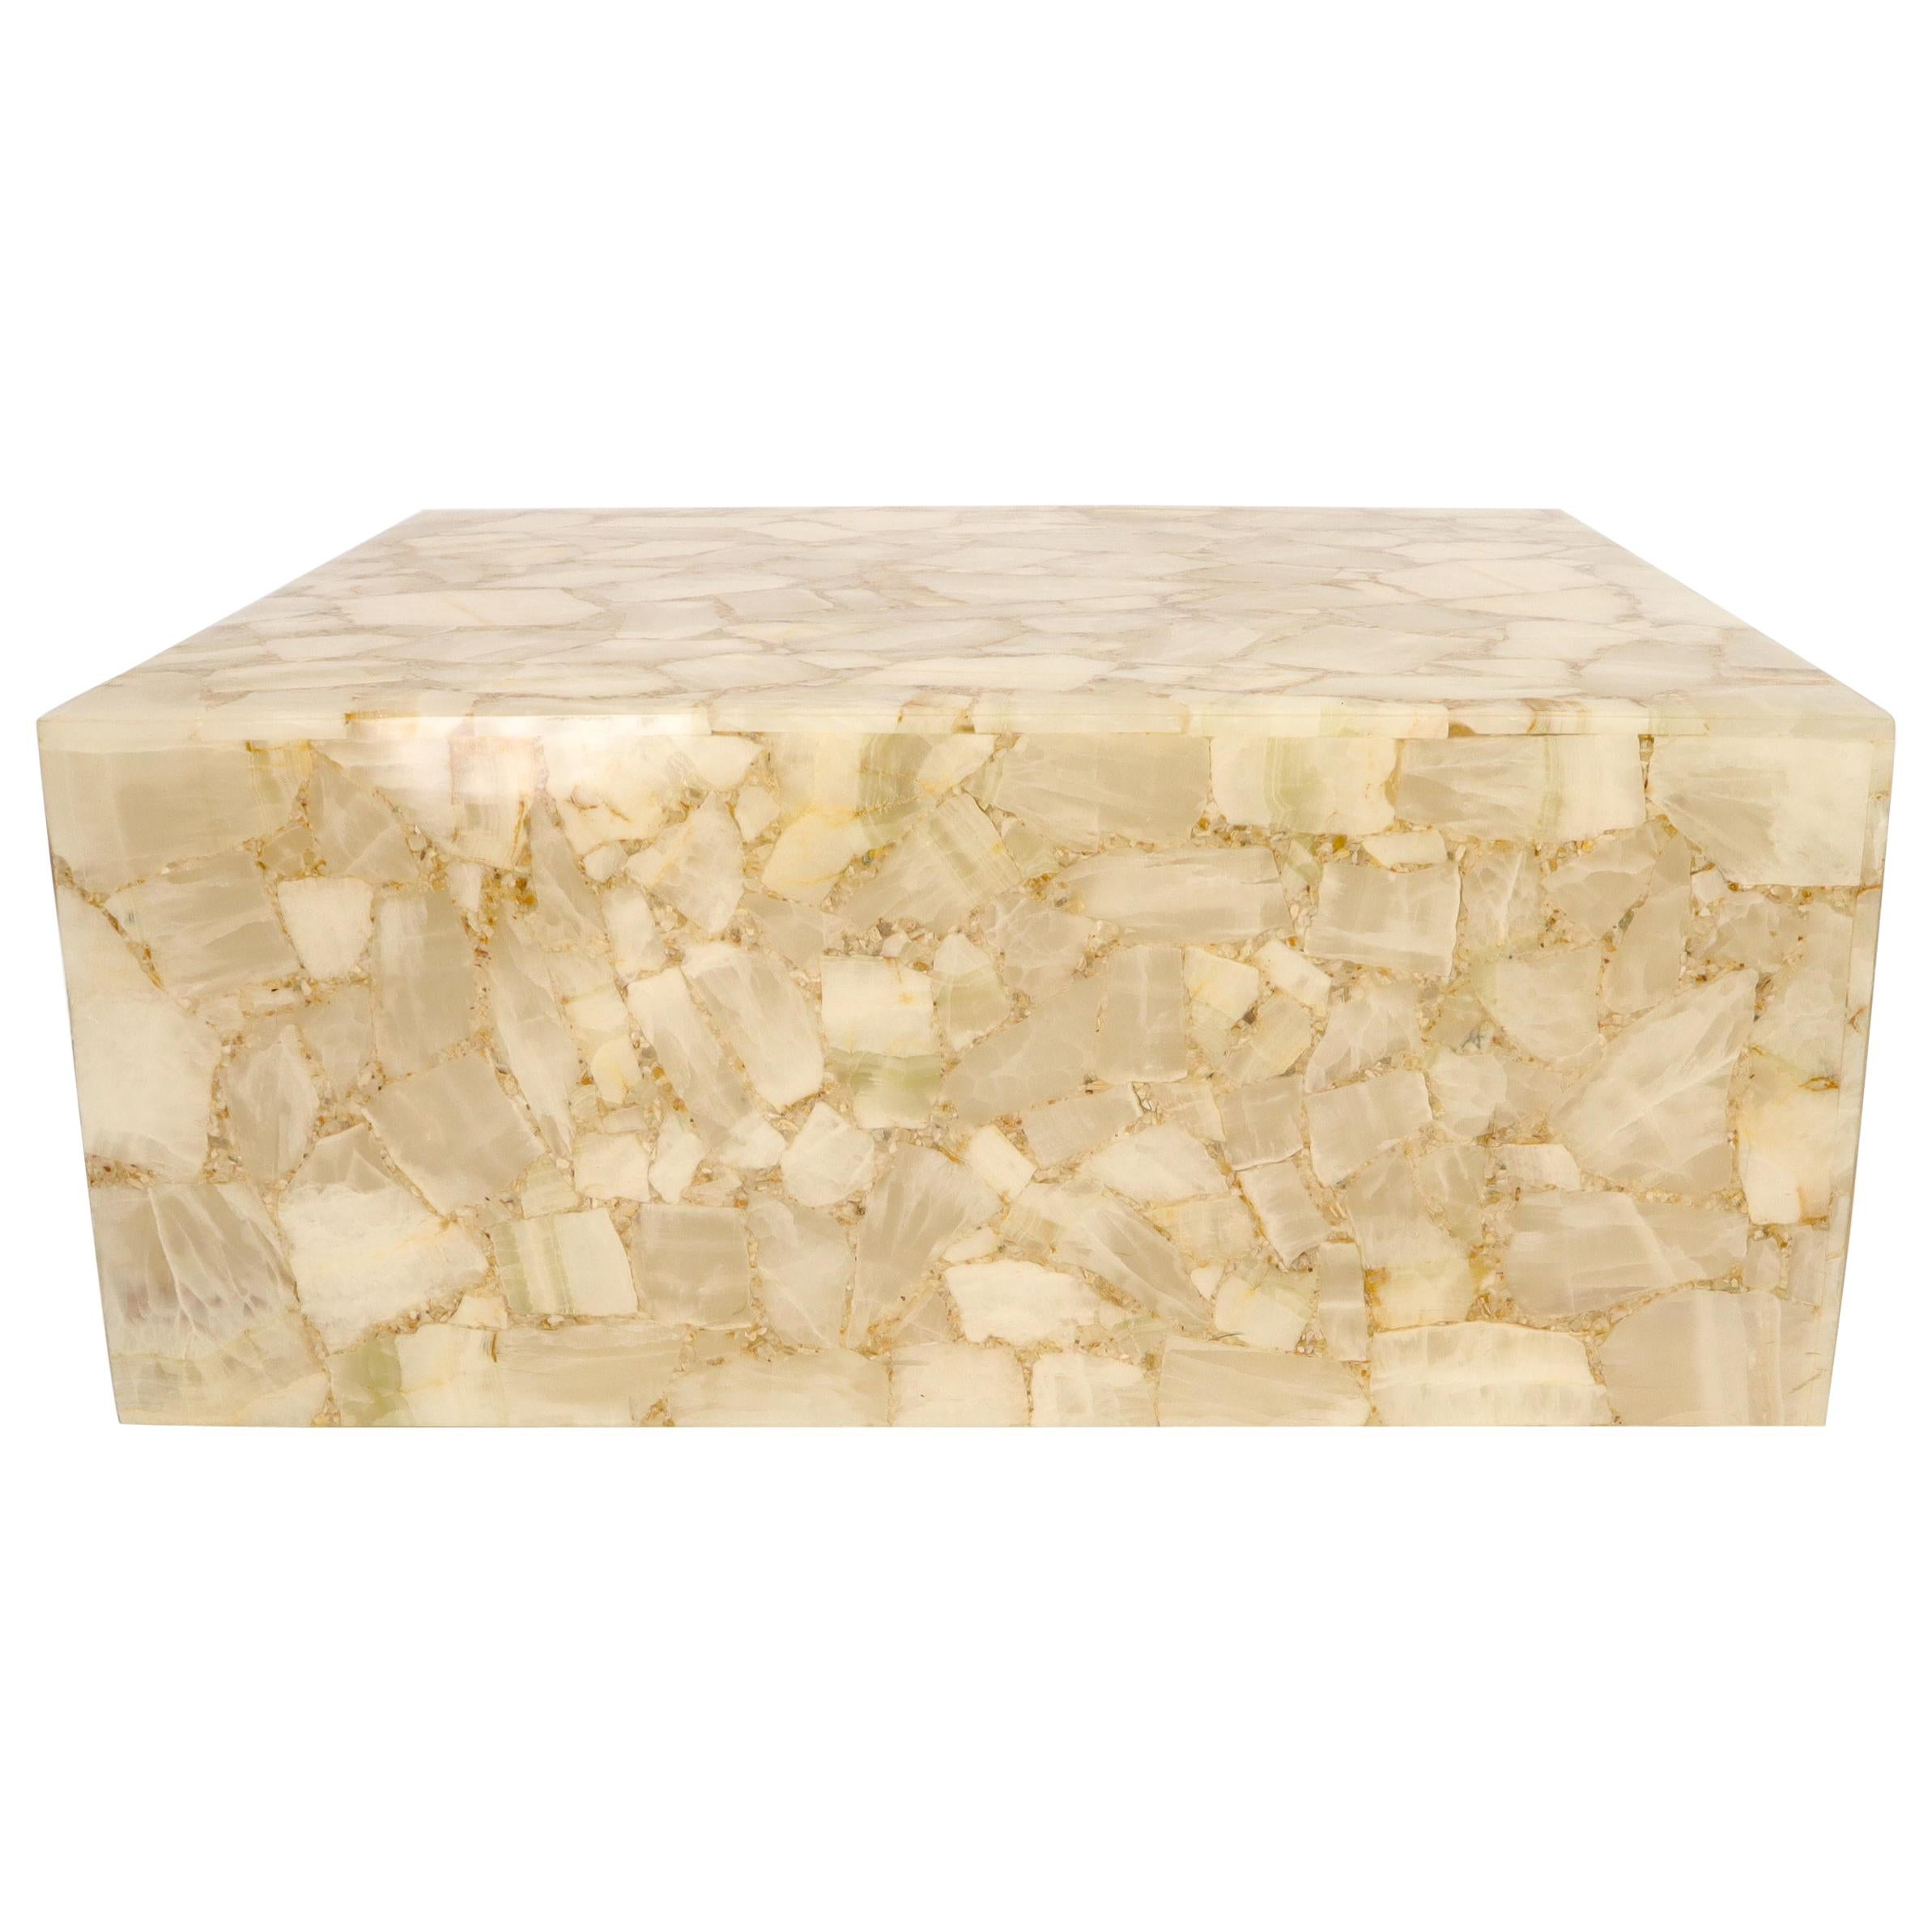 Onyx and Resin Square Cube Shape Mid-Century Modern Coffee Table